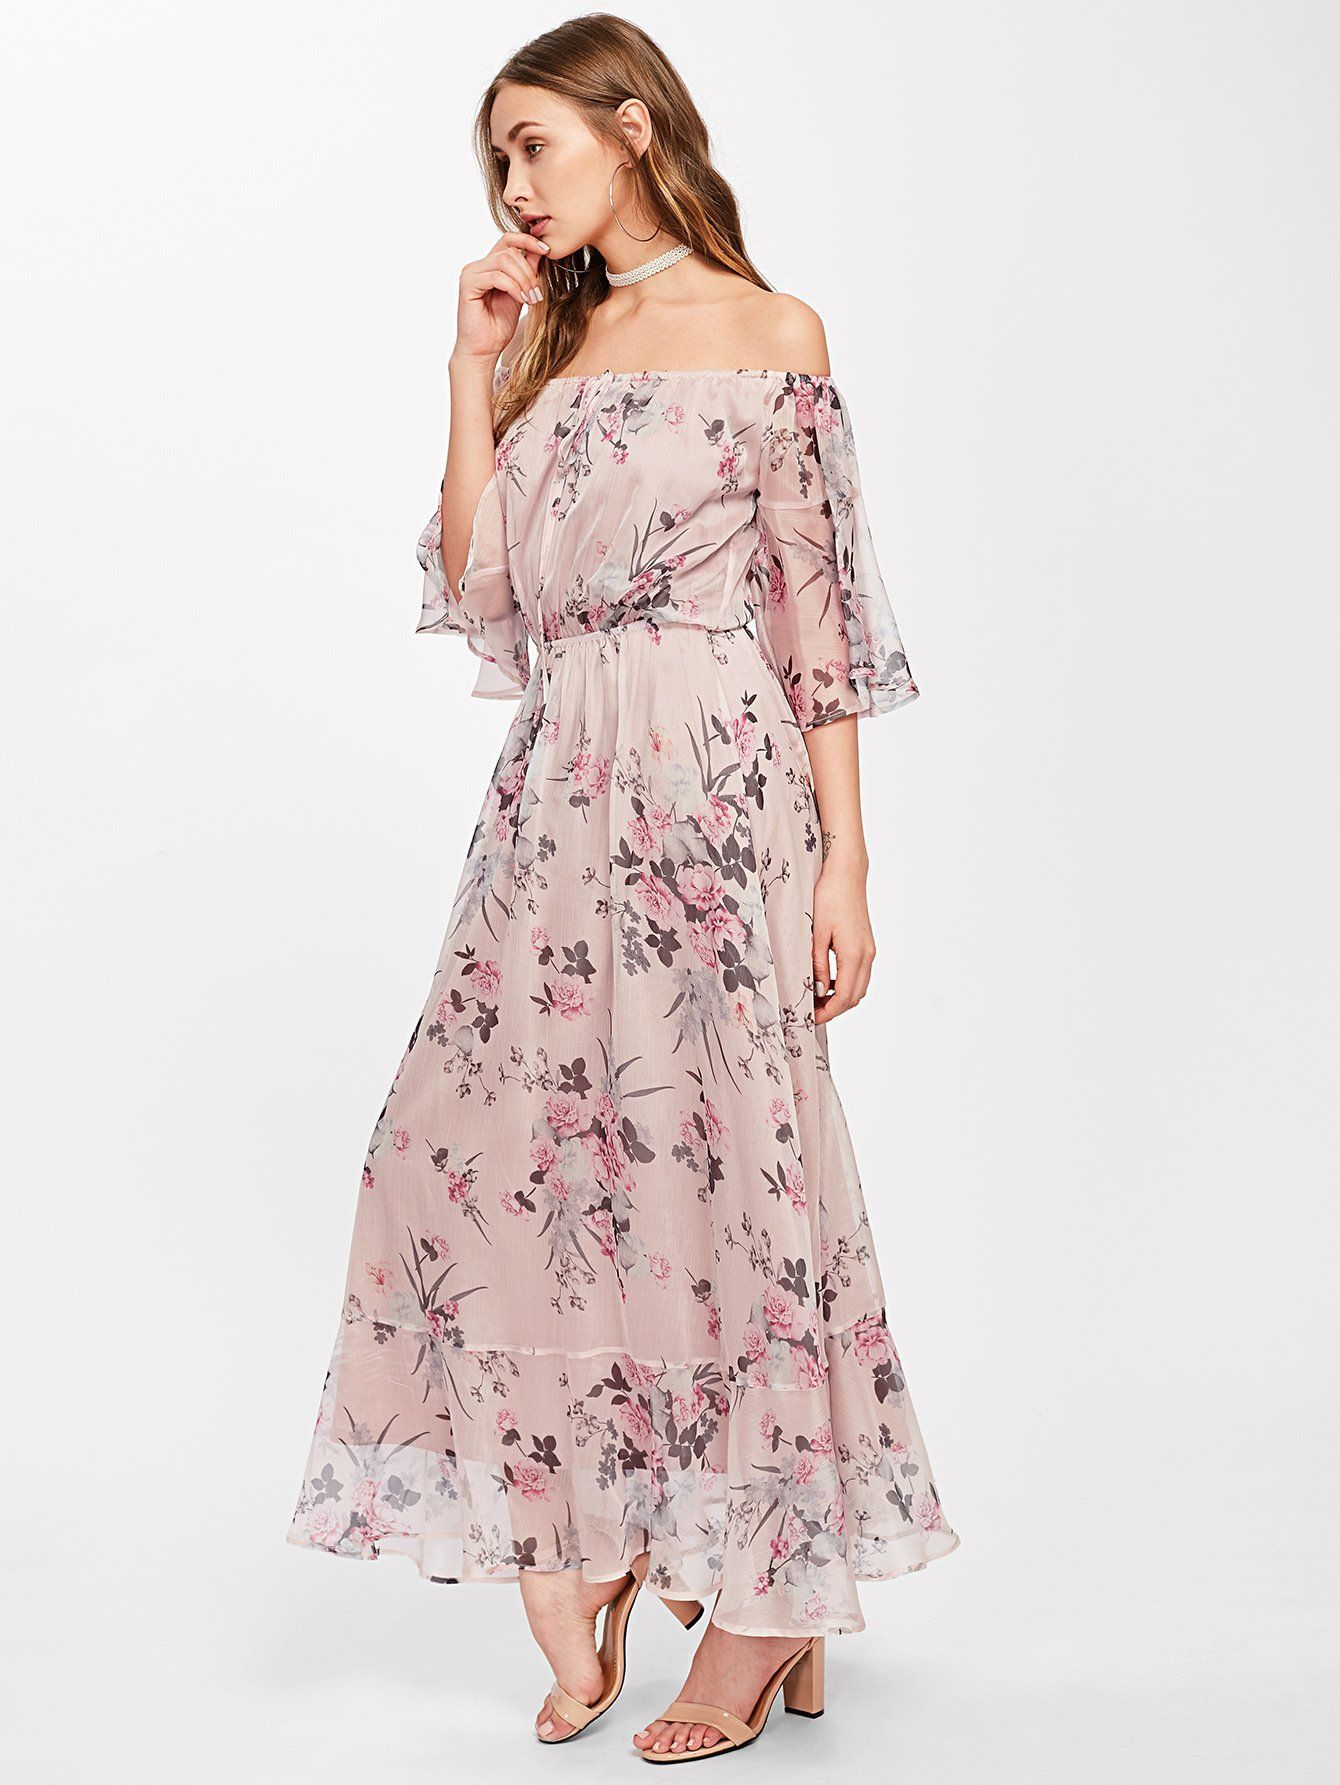 12ec83aa4f Material: 100% Polyester Color: Pink Pattern Type: Floral Neckline: Off the  Shoulder Style: Vacation, Sexy, Elegant Silhouette: A Line Decoration:  Ruffle ...